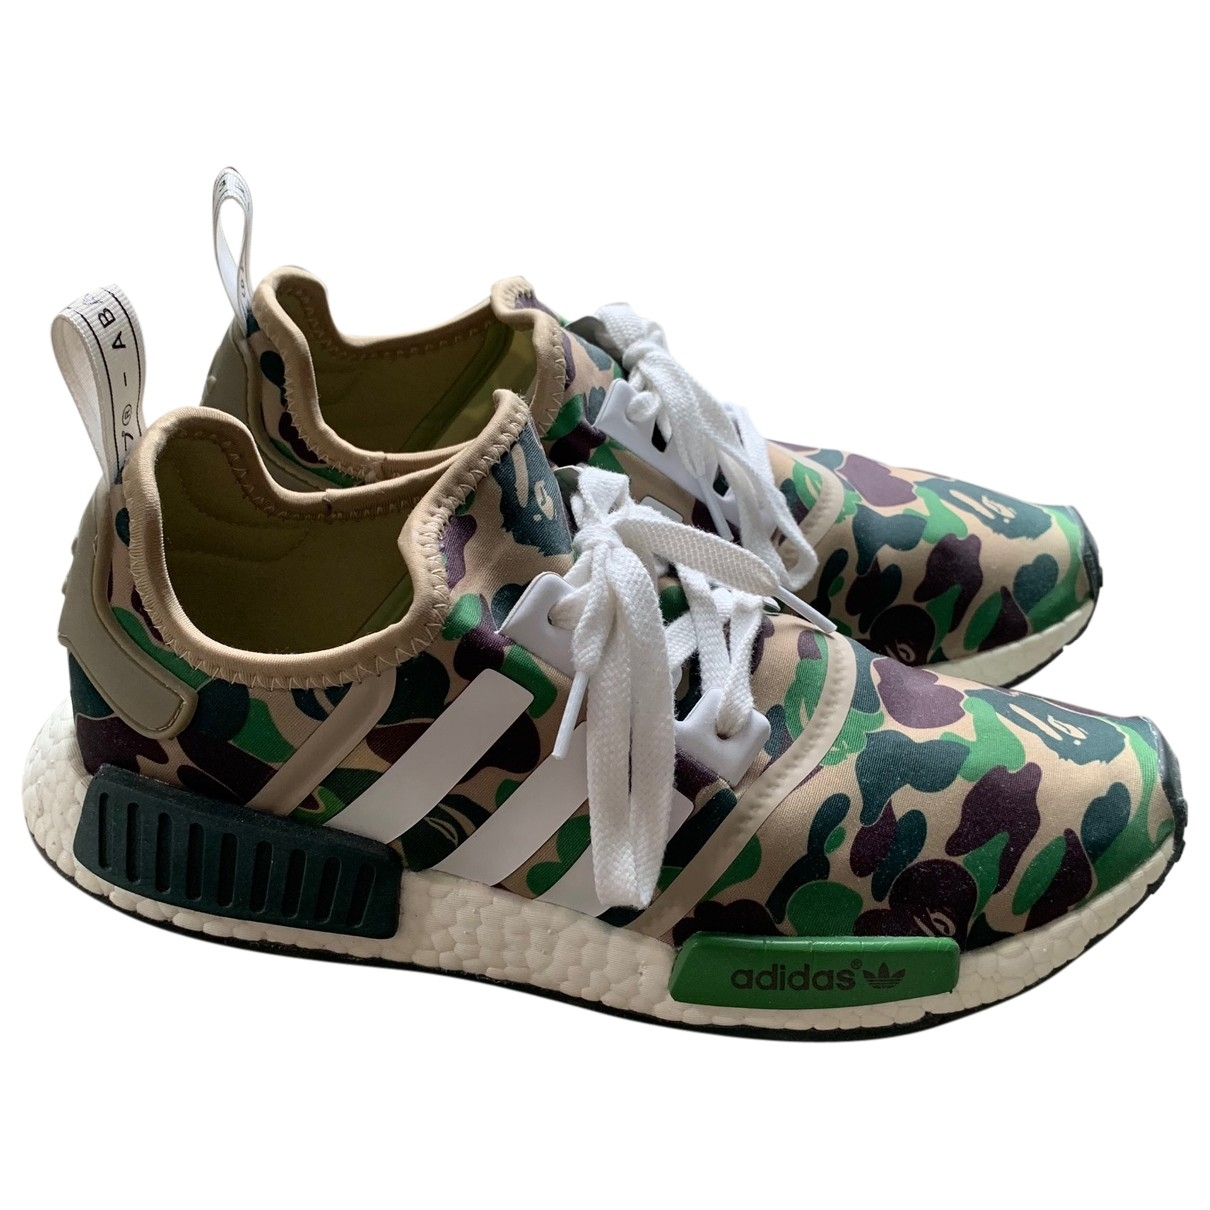 Adidas Nmd Green Trainers for Men 44.5 EU